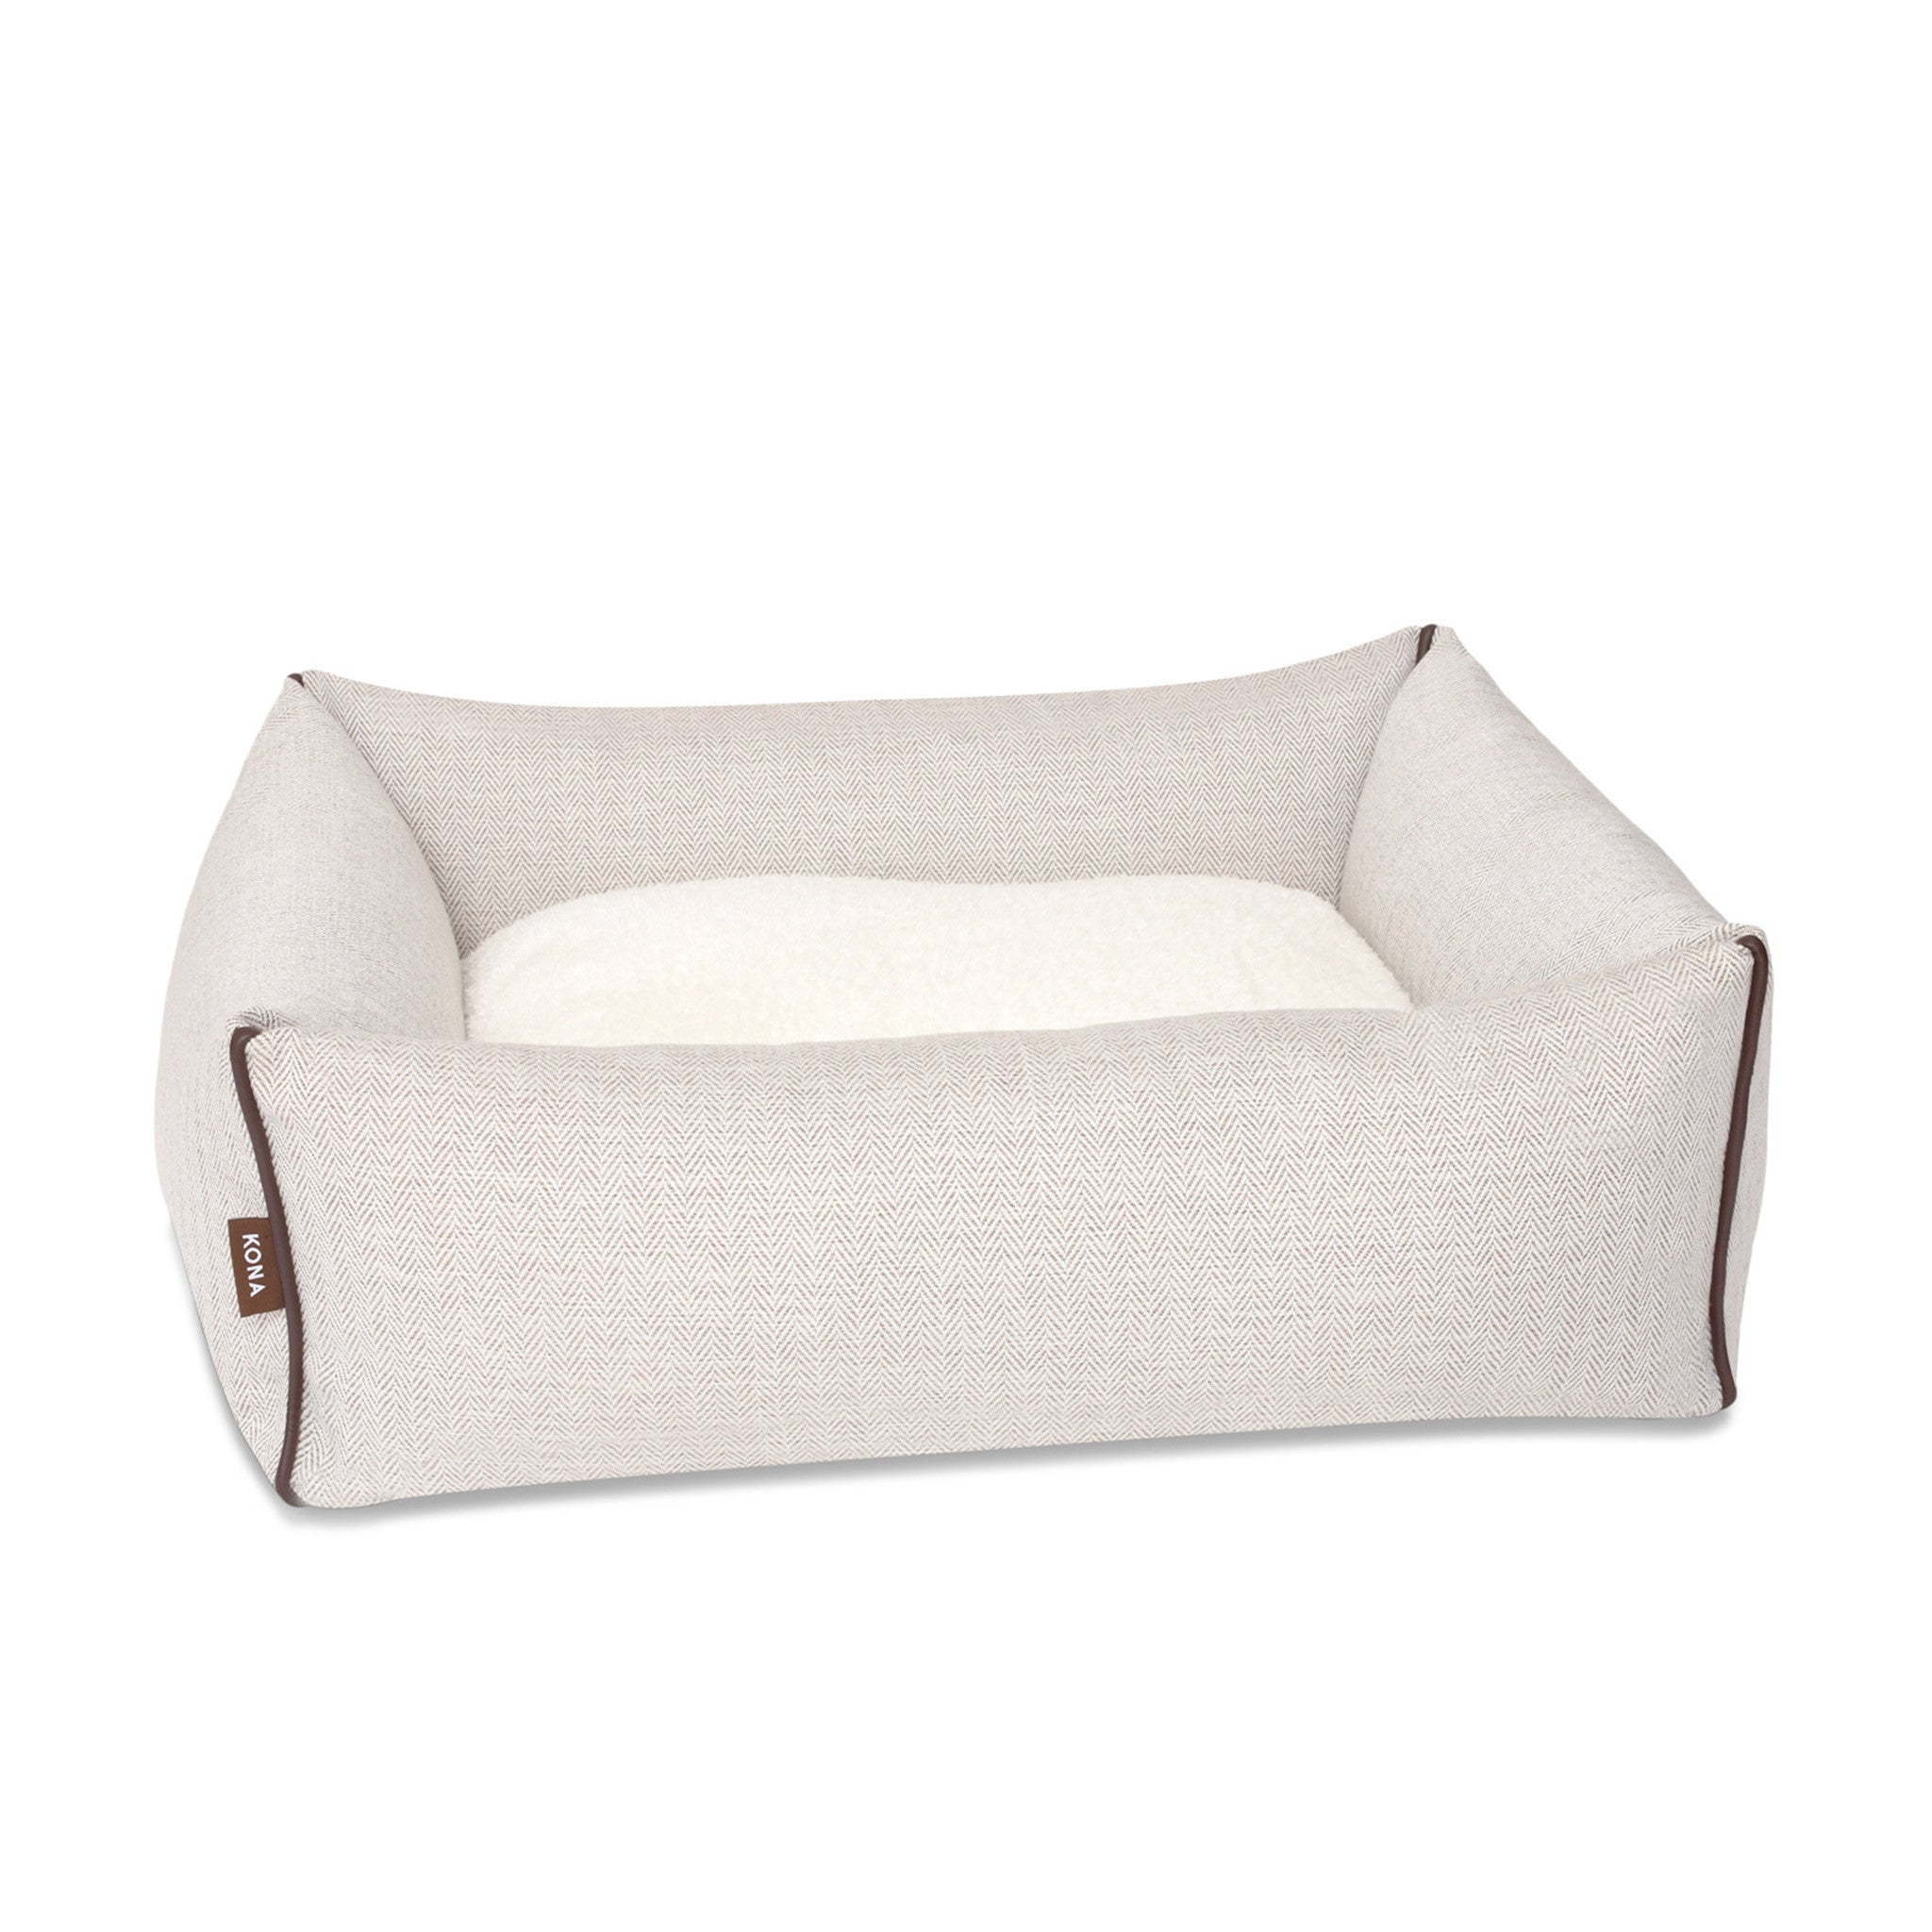 pet and pets dog accessories owners me more show designer welcome their for wolfybeds discerning to bed luxury beds